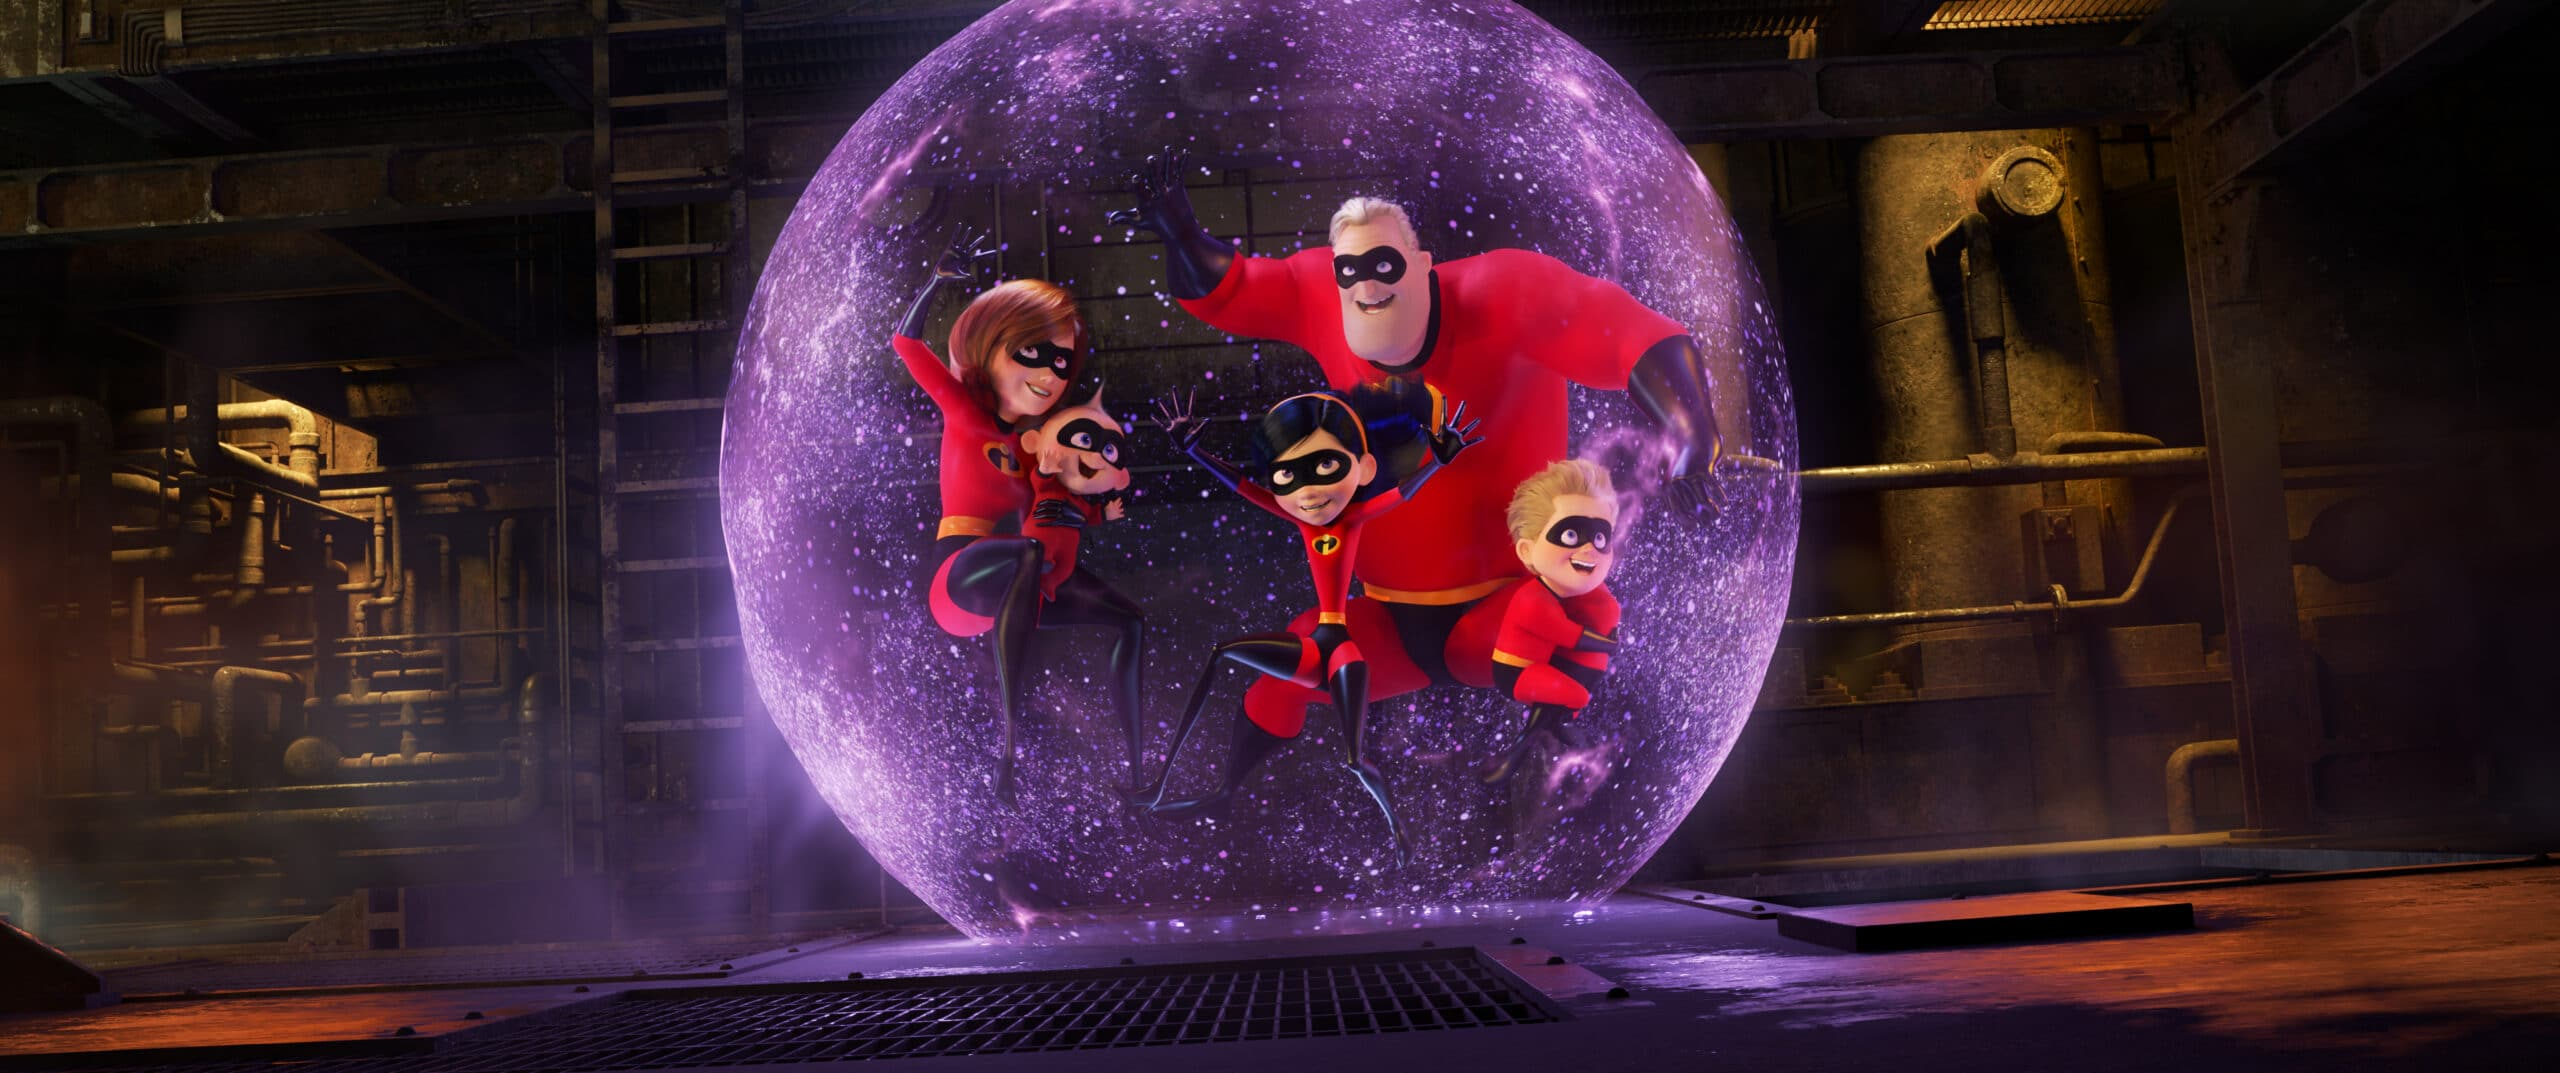 In the midst of battling the Underminer villain, Violet protects her family by throwing one of her most super force fields yet. Disney•Pixar's INCREDIBLES 2 that opens in theatres everywhere June 15th!